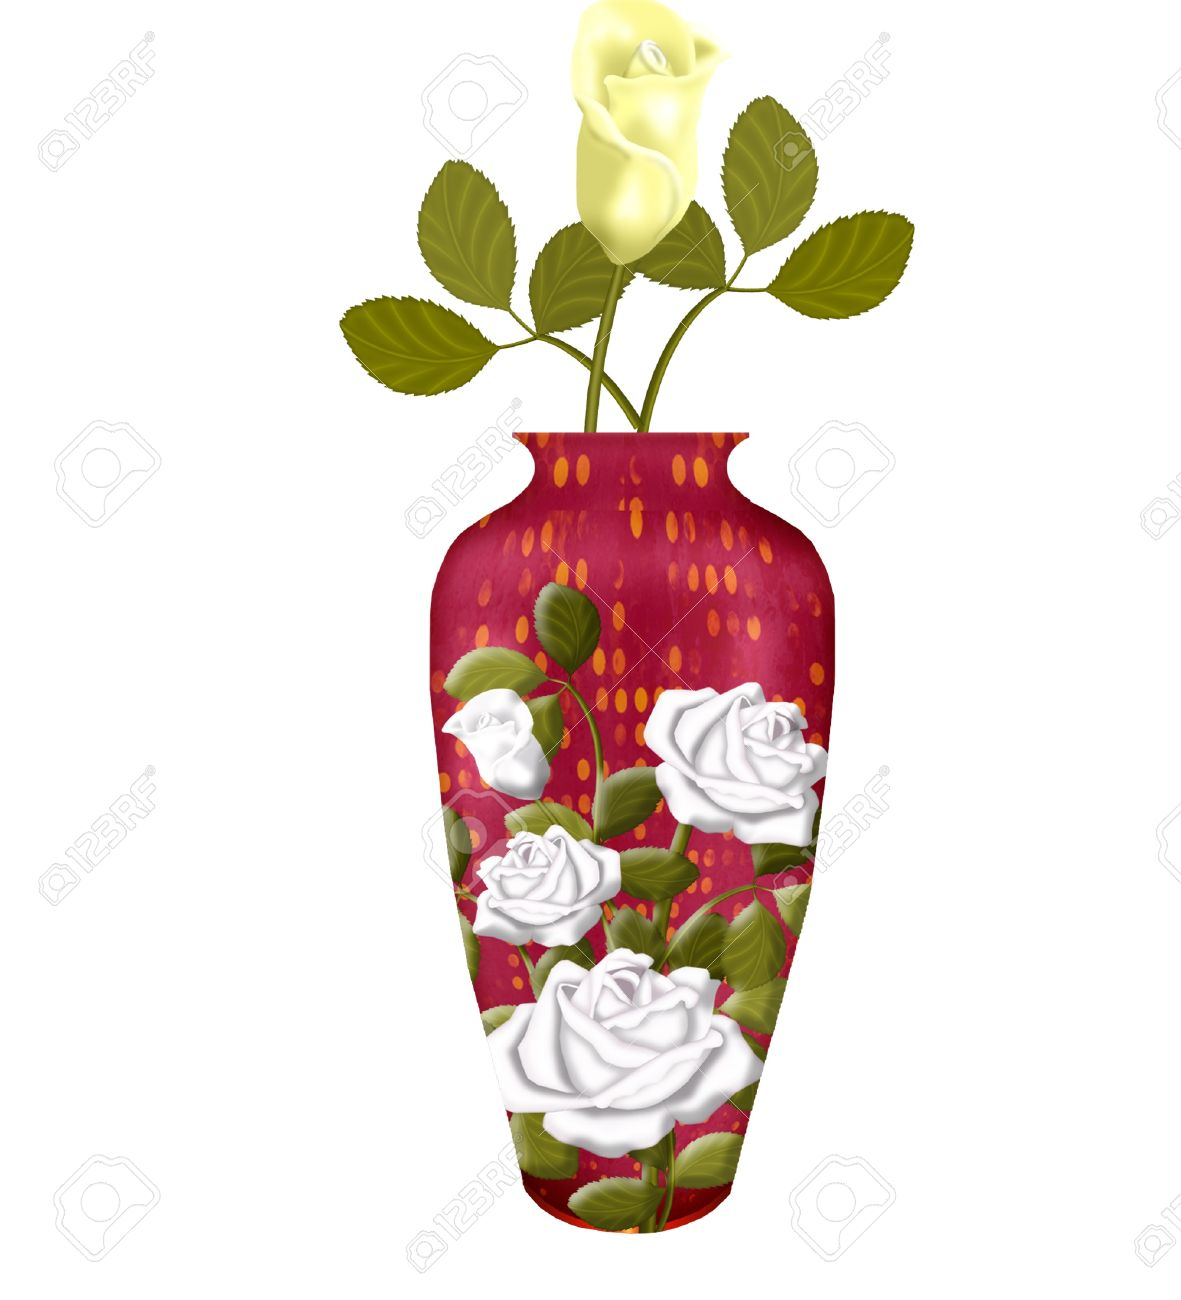 Flower vase images stock pictures royalty free flower vase a pretty vase with flowers in it reviewsmspy